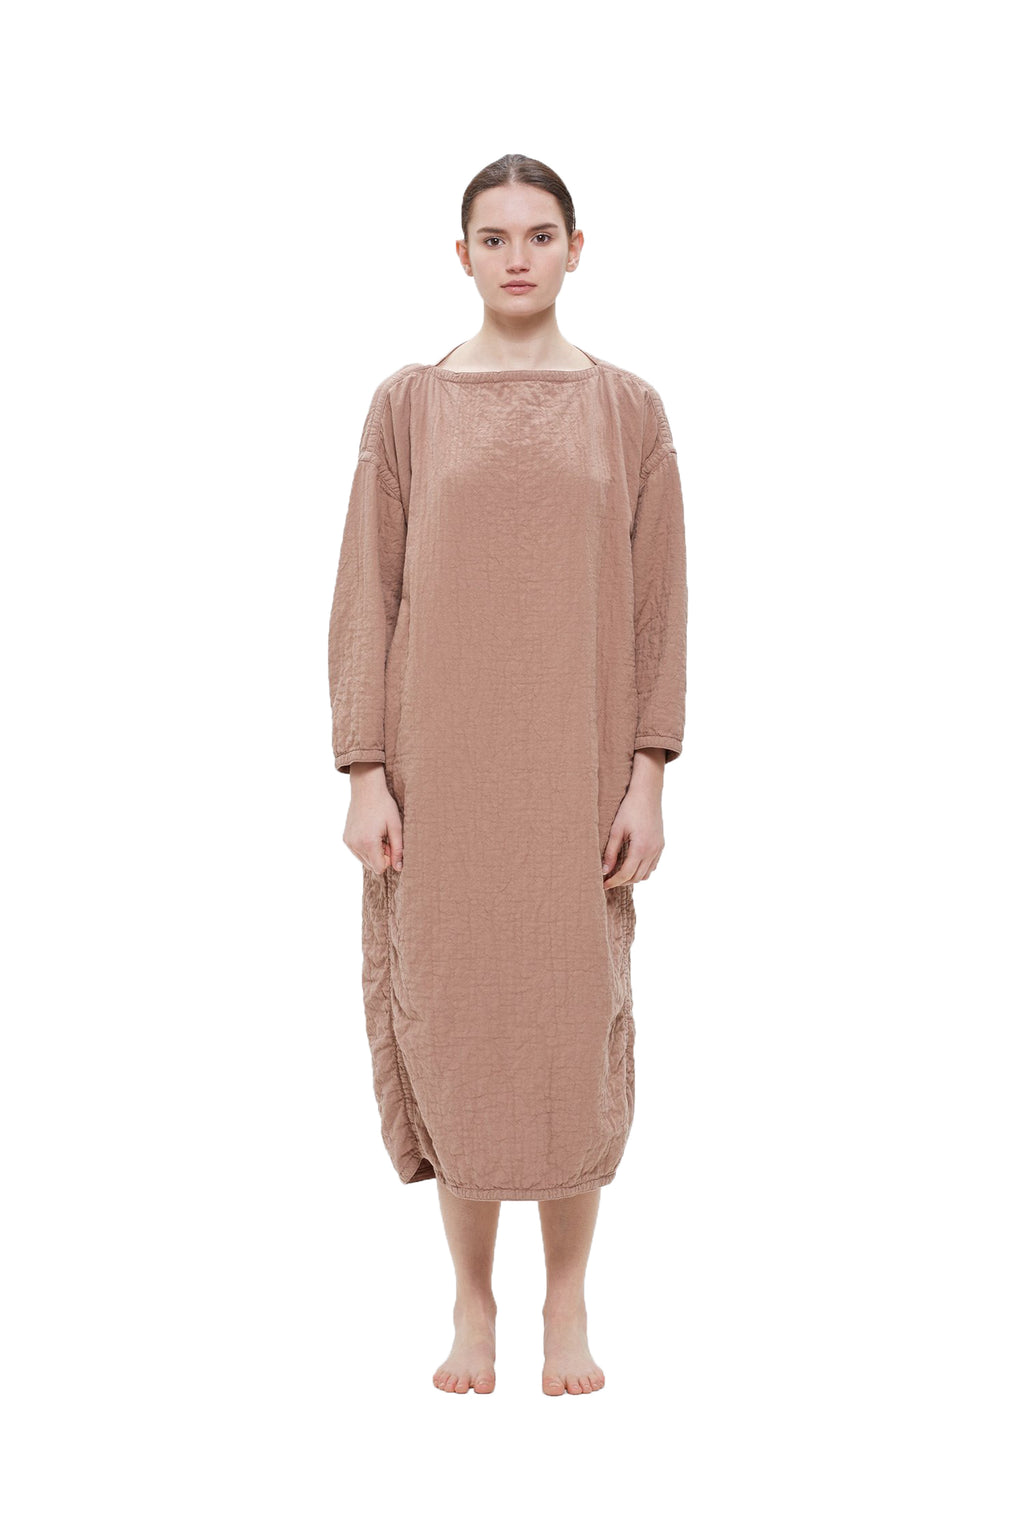 EASY DRESS - CAMEL